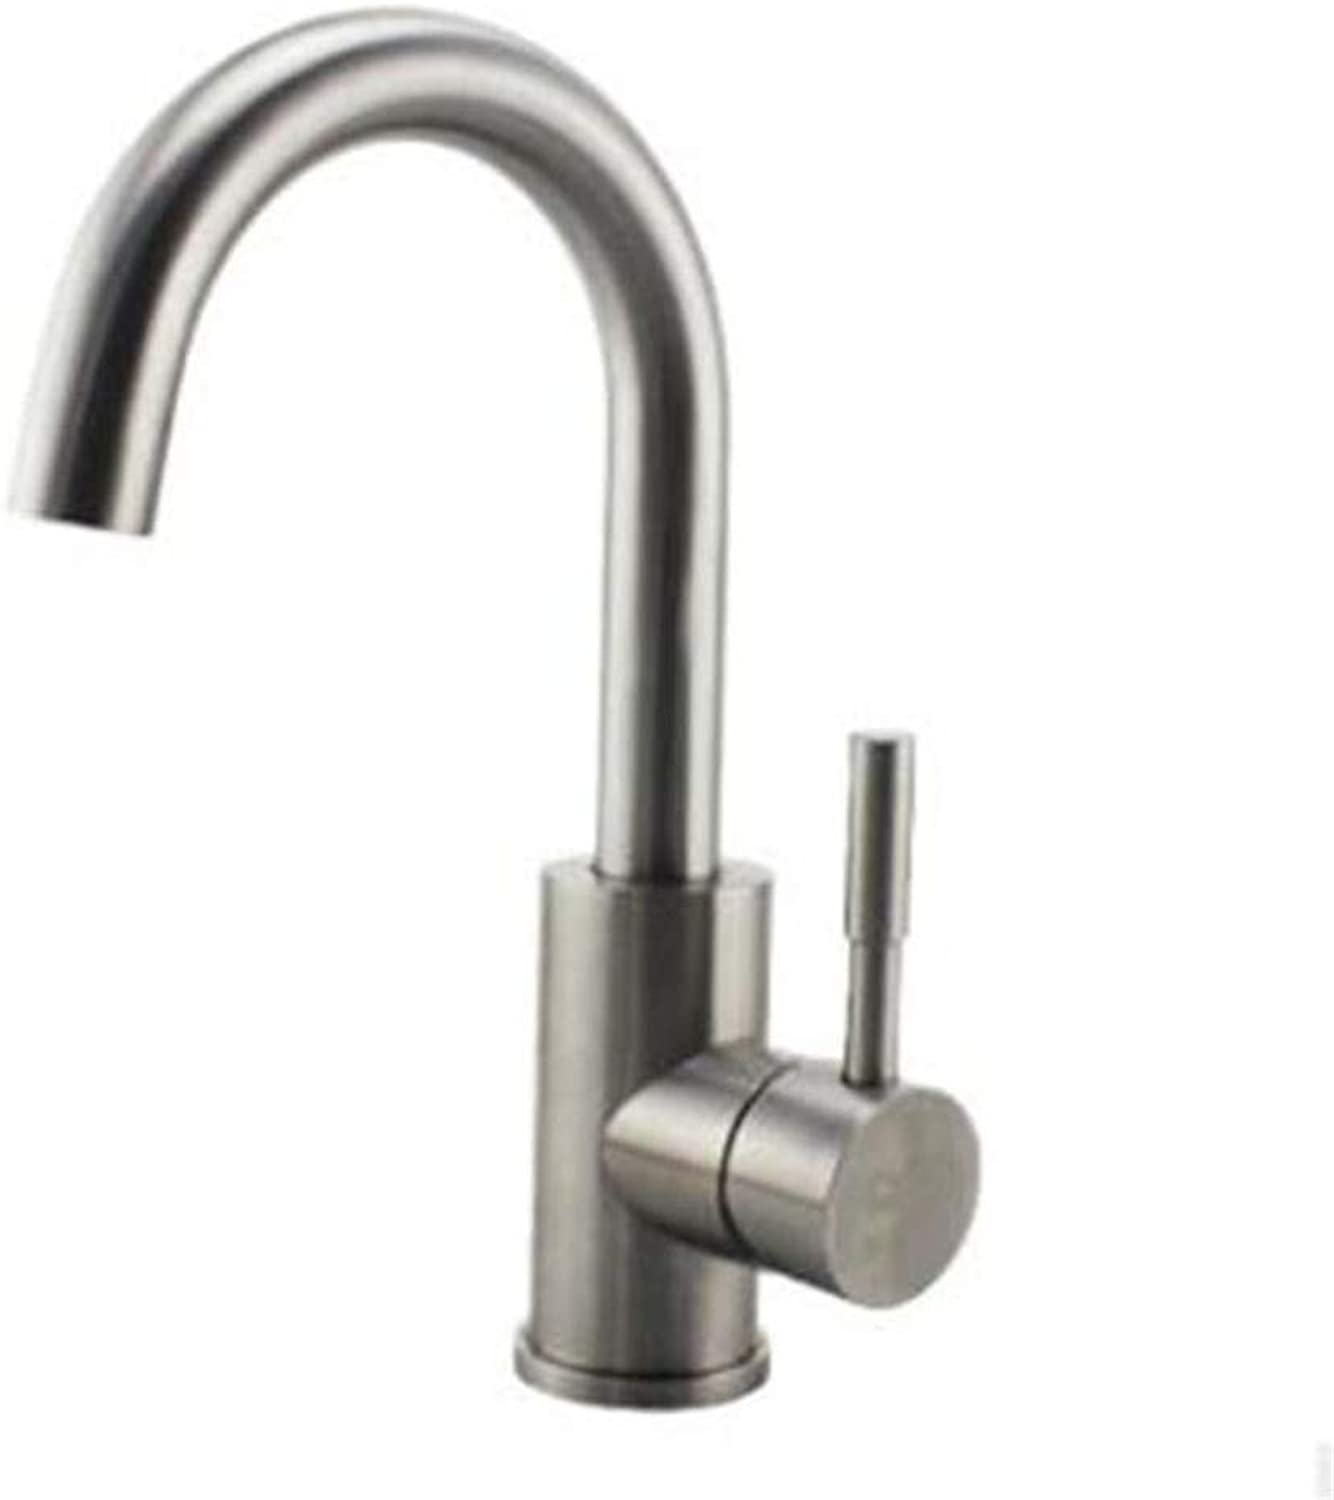 Water Tap Bathroom 304 Stainless Steel Brushed Lead-Free Sink Faucet redary Sink Faucet Hot and Cold Kitchen Faucet